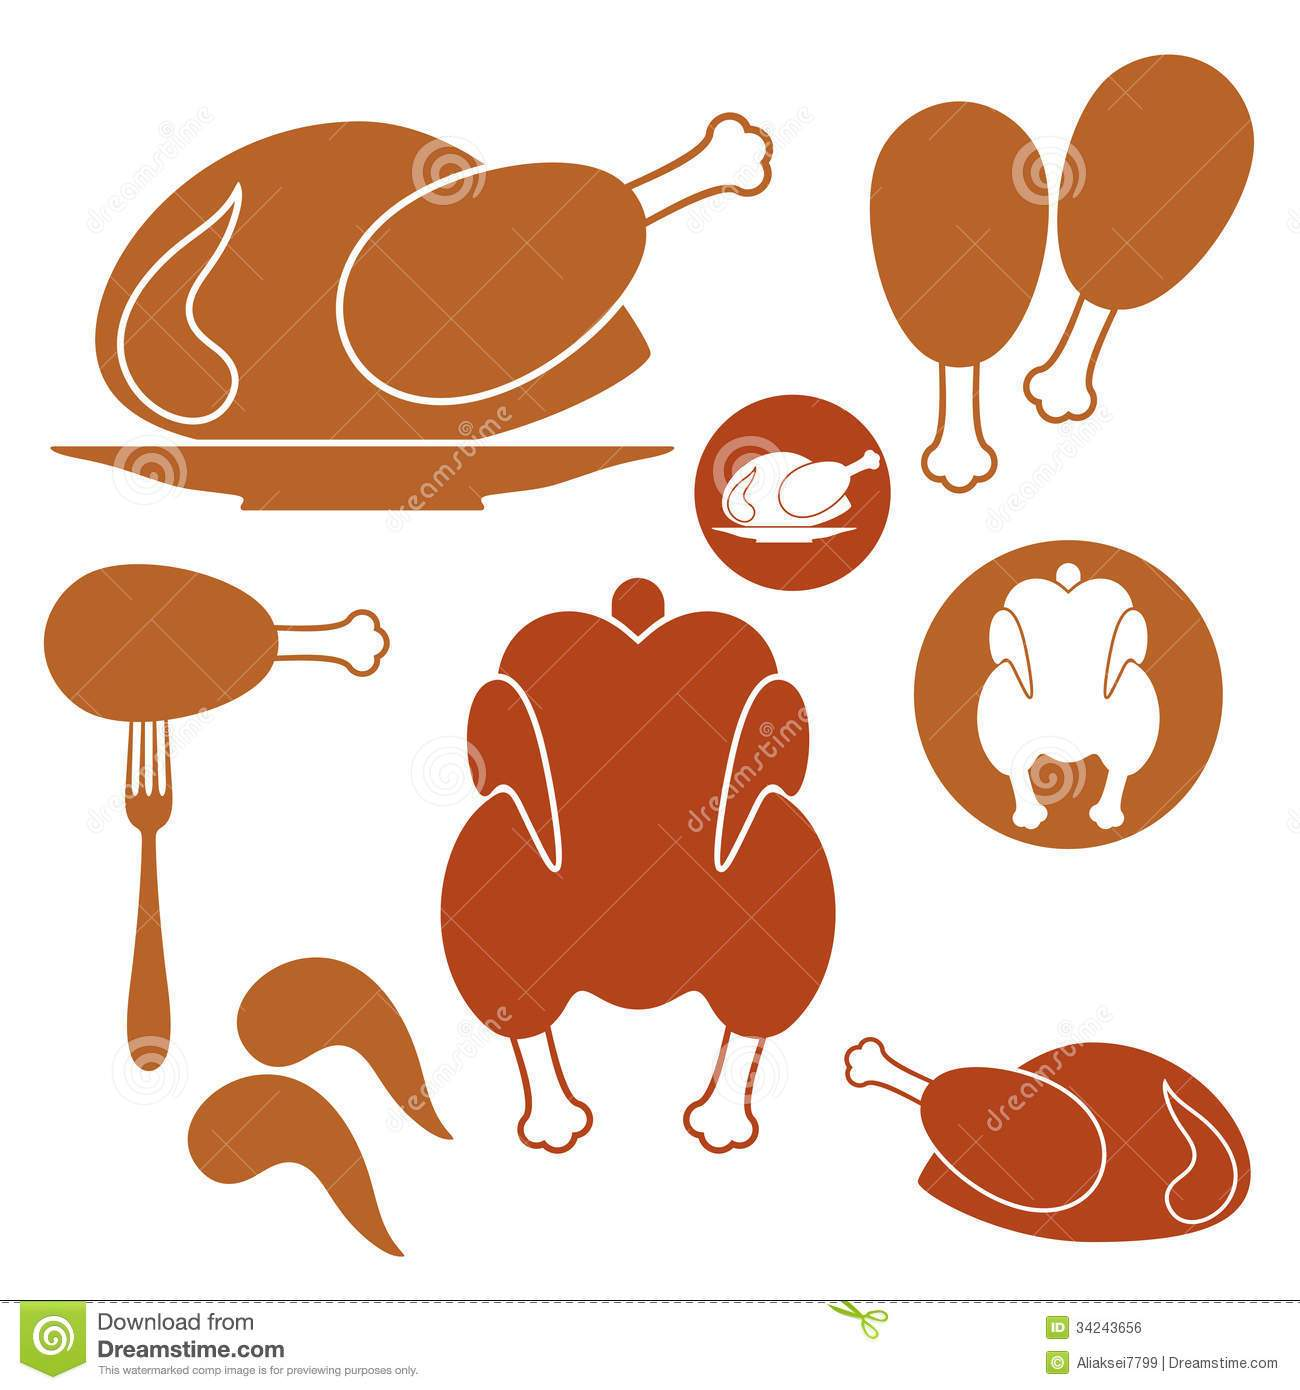 Chicken barbecue clipart 5 » Clipart Portal.